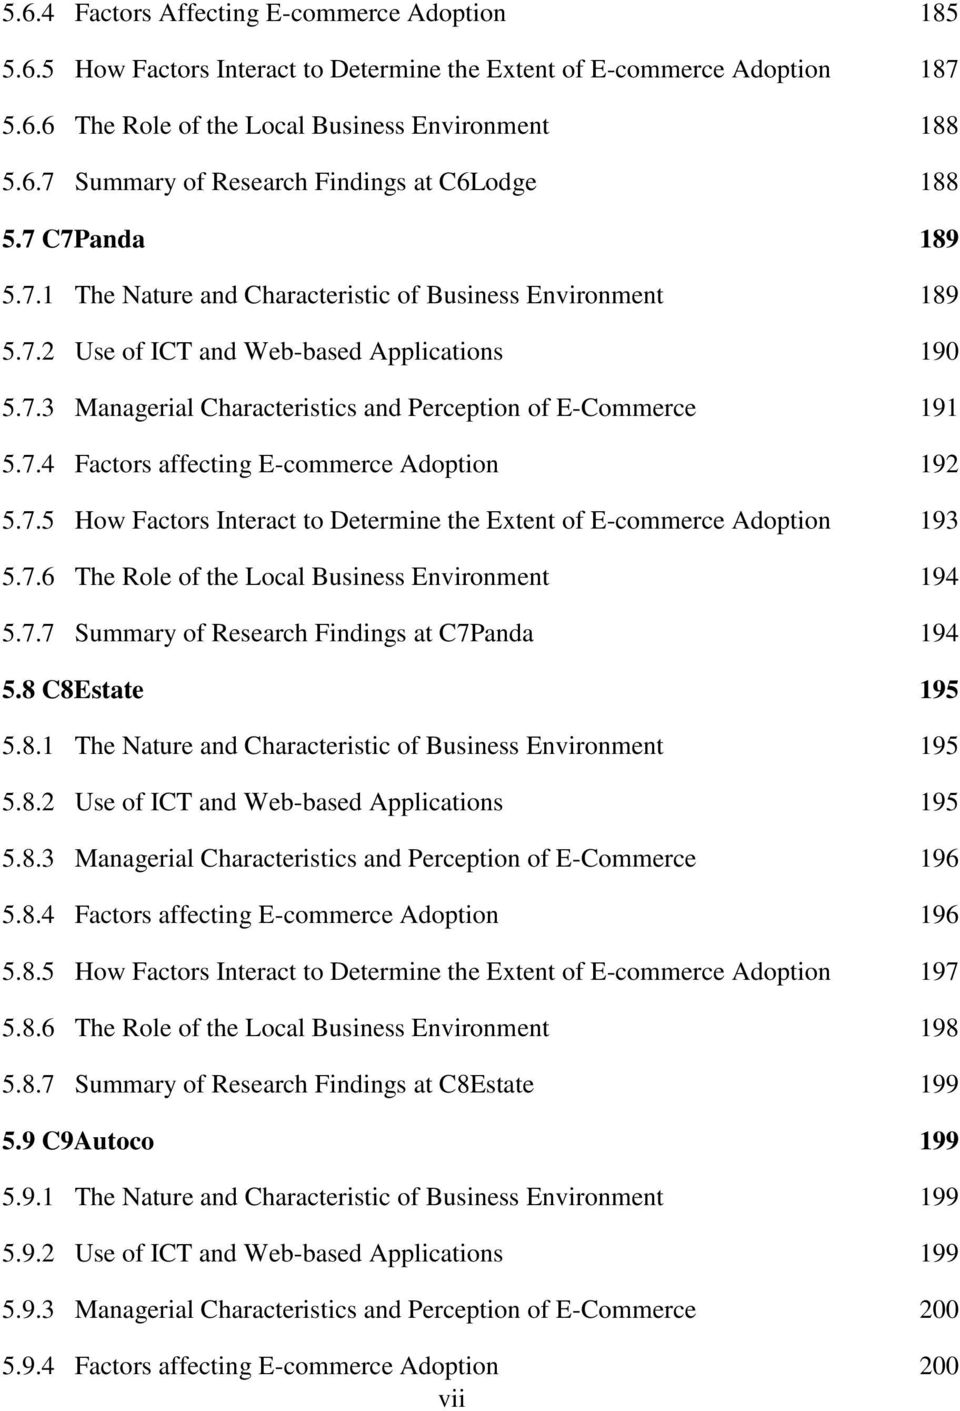 7.5 How Factors Interact to Determine the Extent of E-commerce Adoption 193 5.7.6 The Role of the Local Business Environment 194 5.7.7 Summary of Research Findings at C7Panda 194 5.8